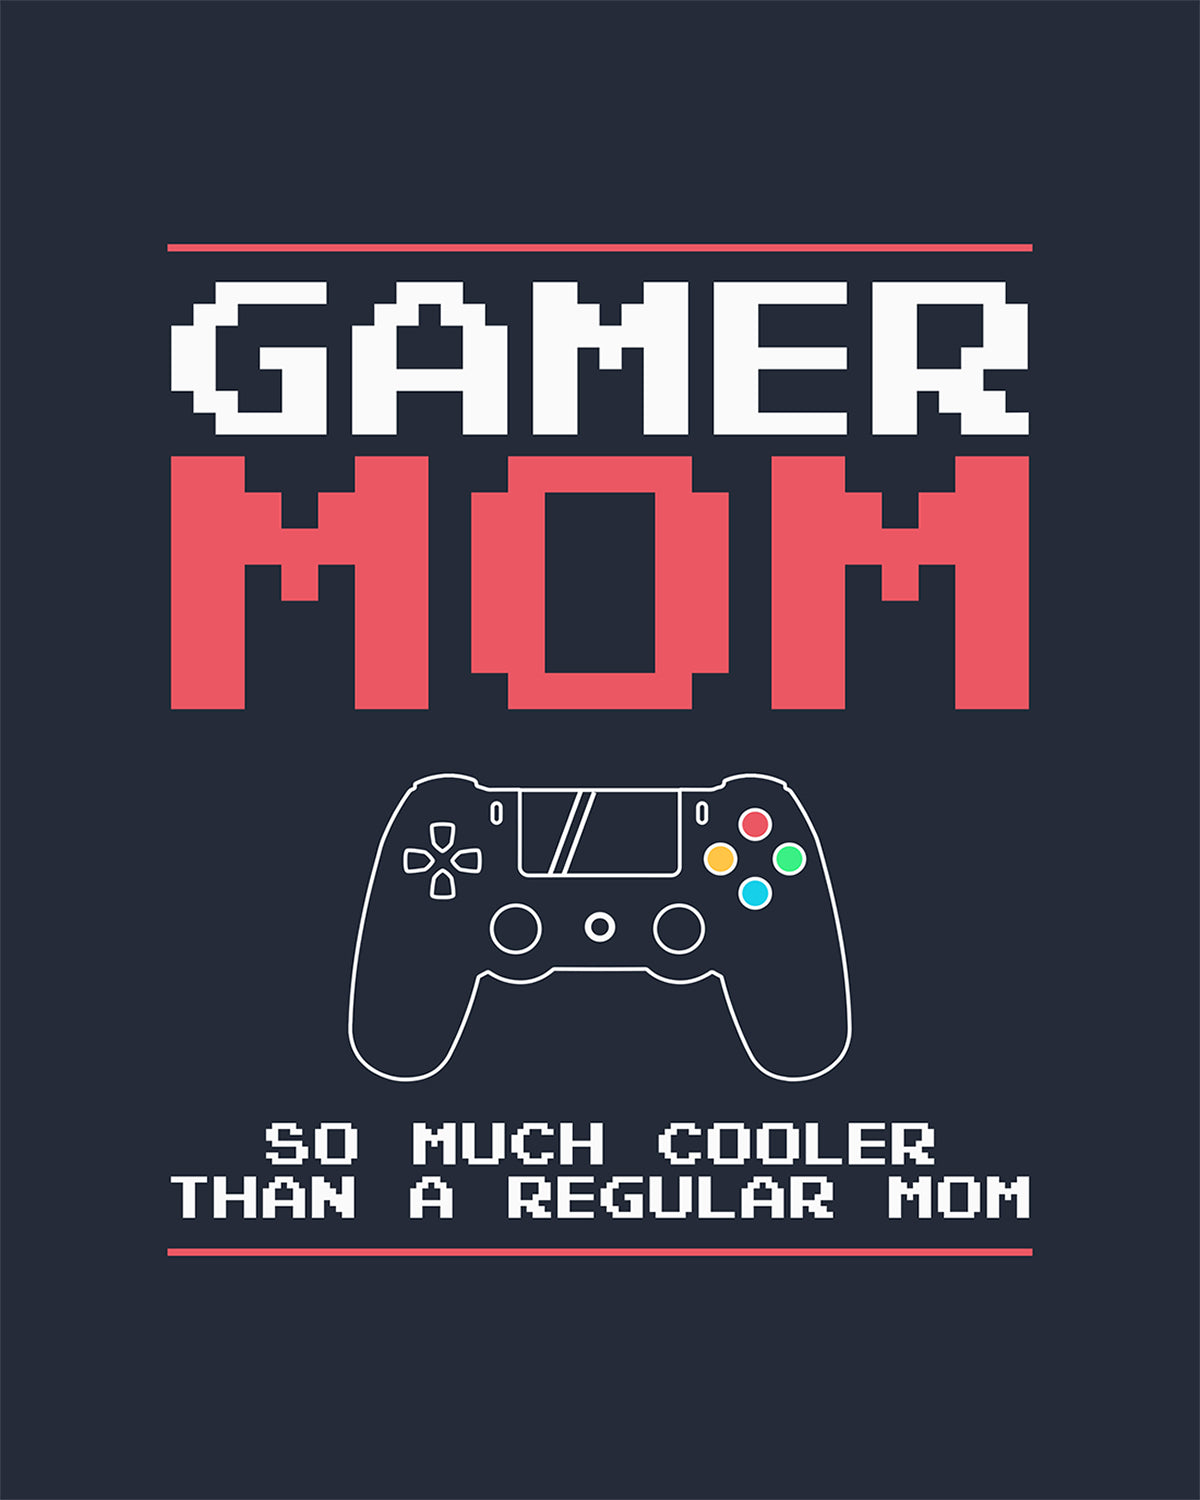 Gamer Mom - So Much Cooler Than A Regular Mom - Wall Decor Art - Print, Poster & Canvas Sizes - Gift for Mom From Children, Gaming